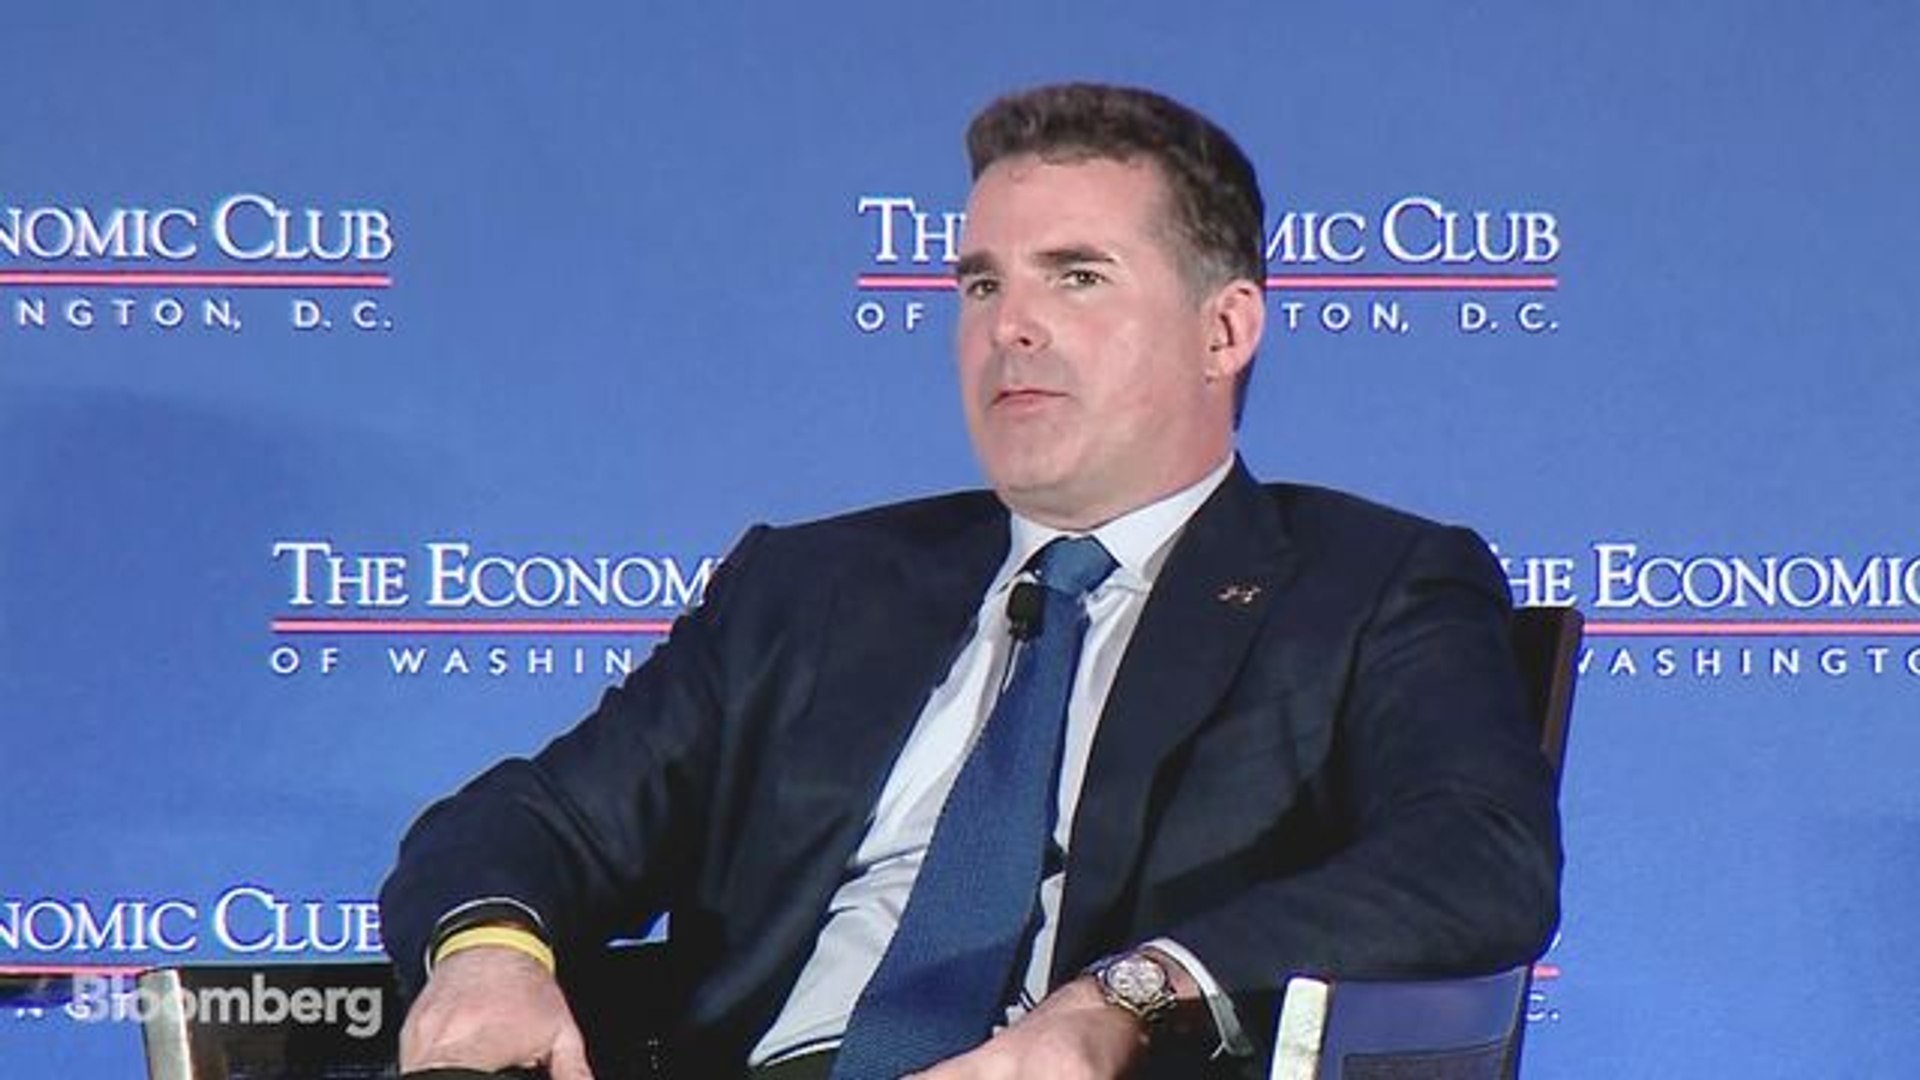 Under Armour CEO Plank Says 'Every Great Company Comes to a Crossroads'